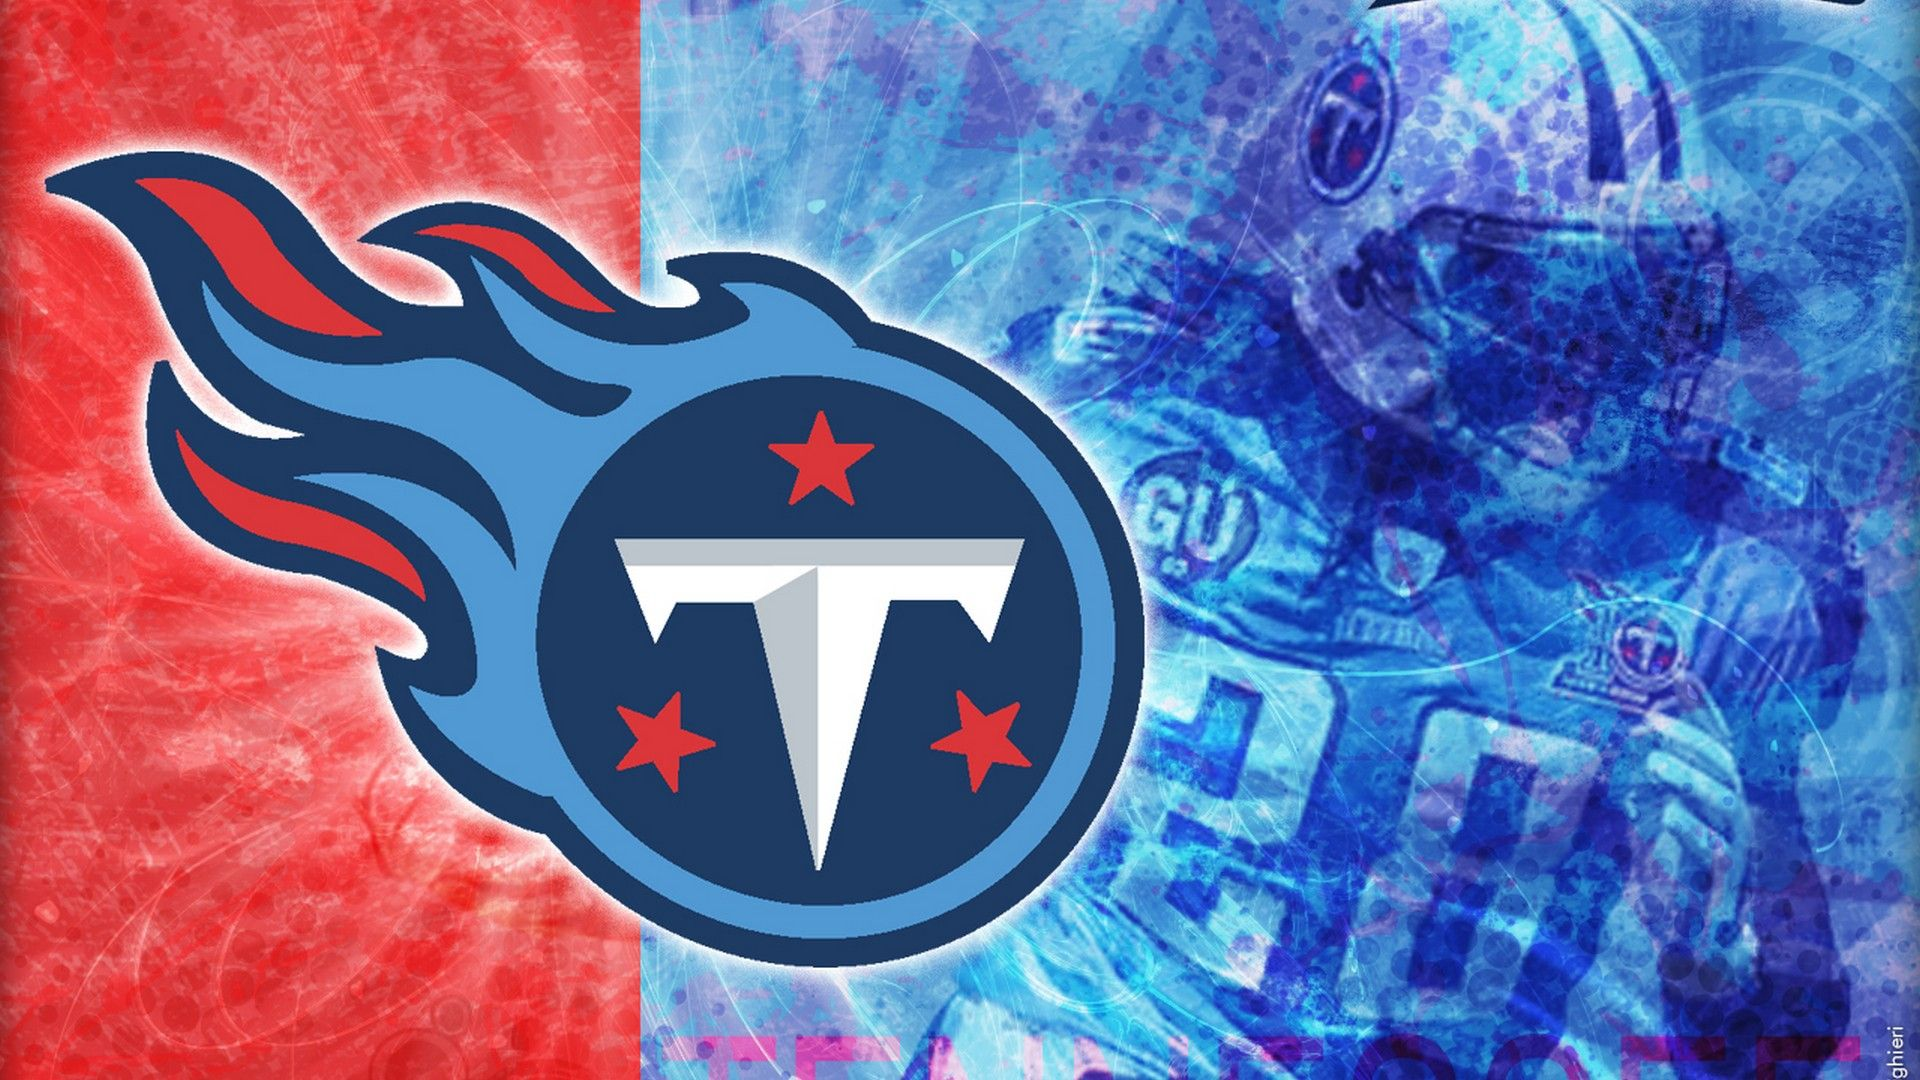 HD Tennessee Titans Wallpapers 2020 NFL Football